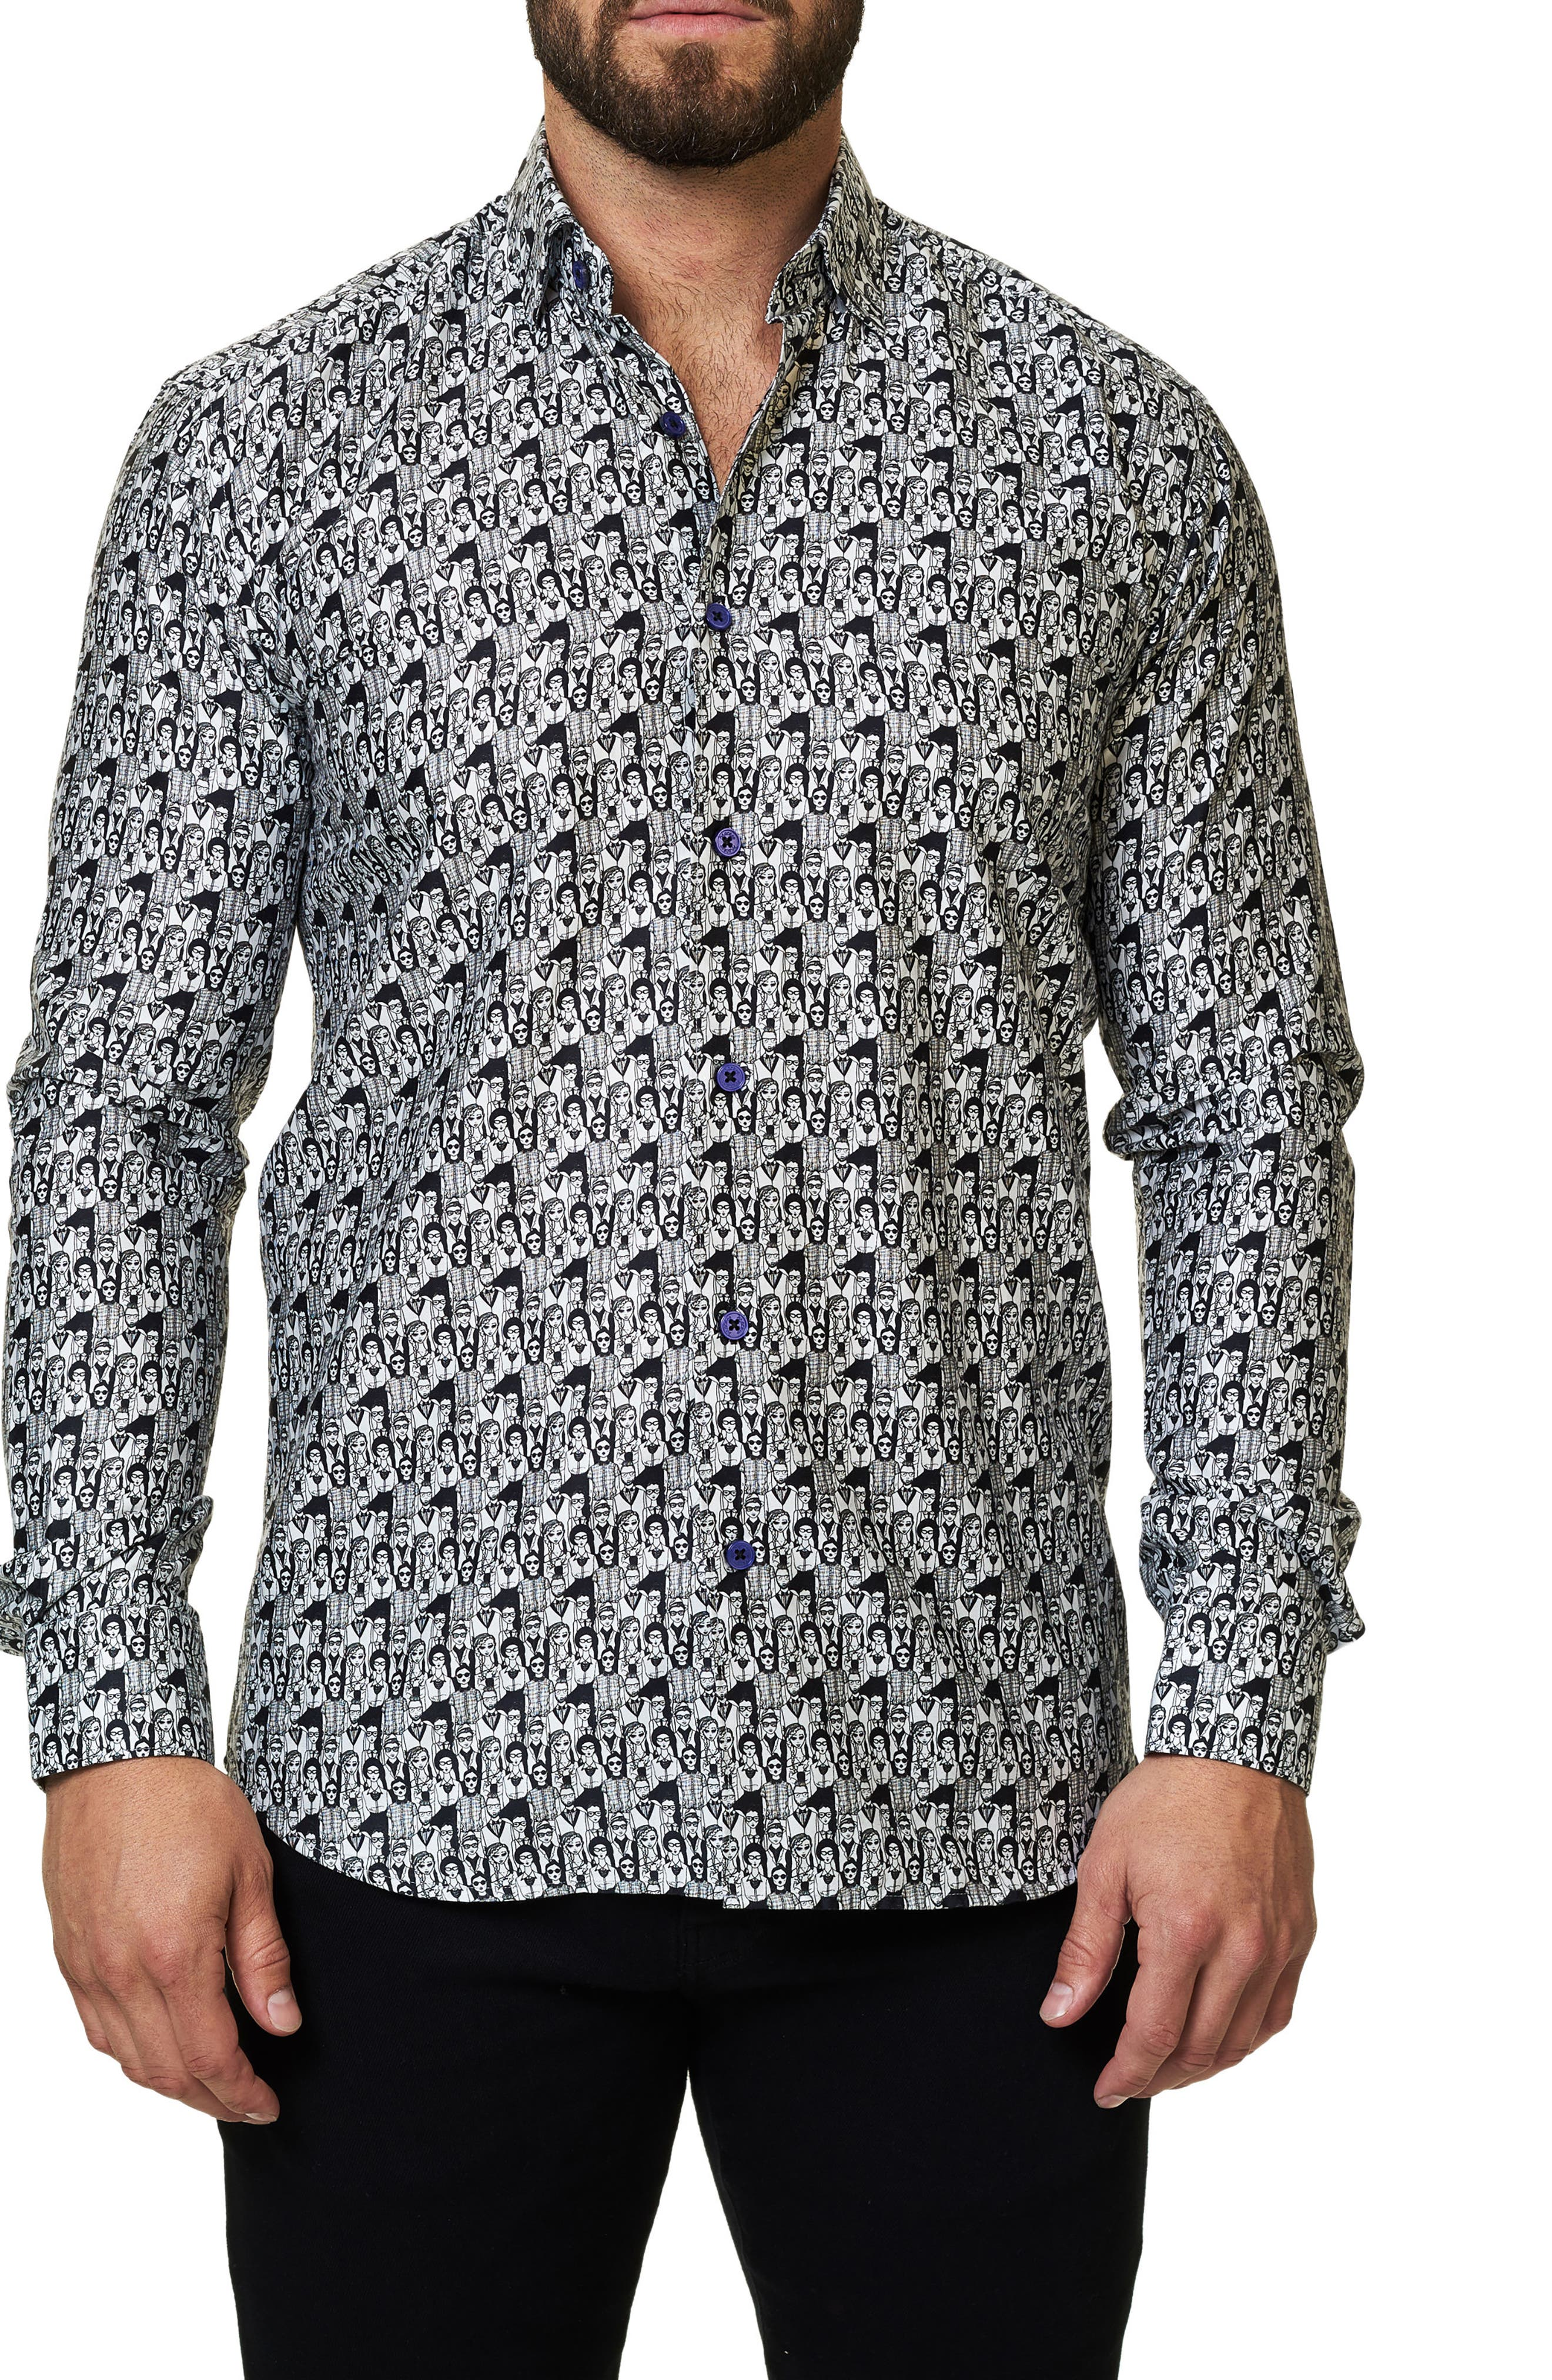 Alternate Image 1 Selected - Maceoo Graphic Trim Fit Sport Shirt